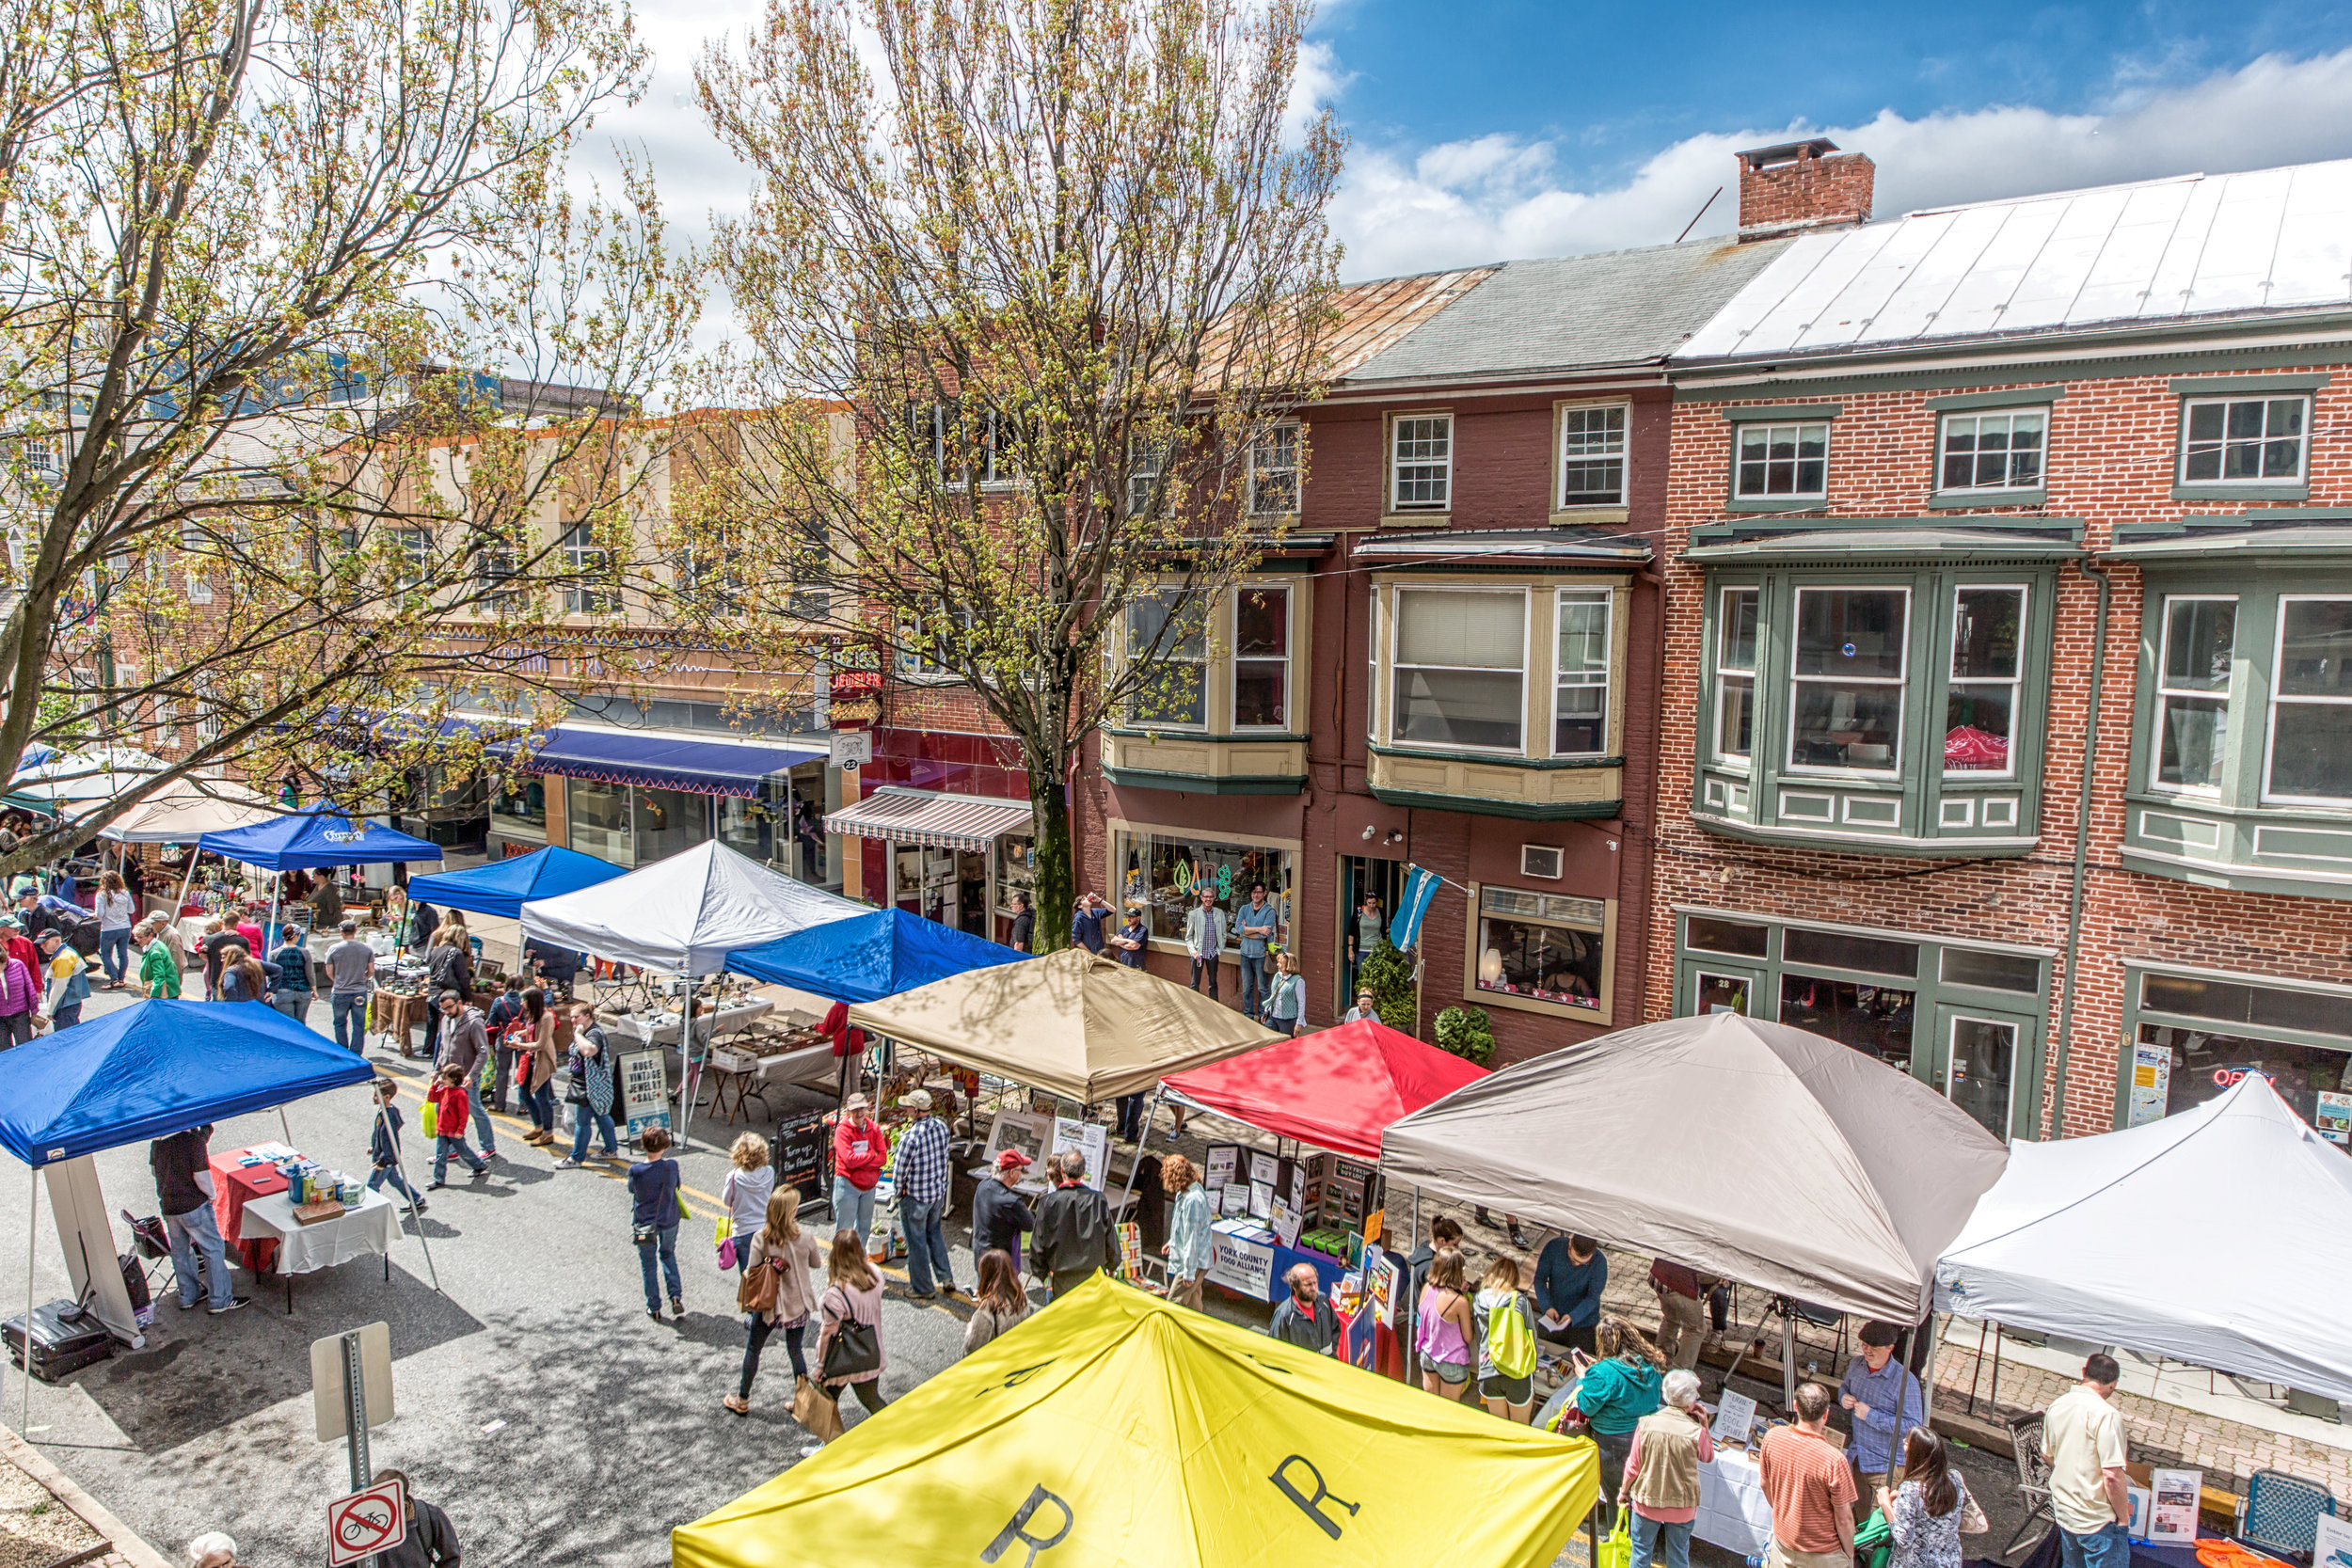 Sponsor a Downtown Inc event in Downtown York PA